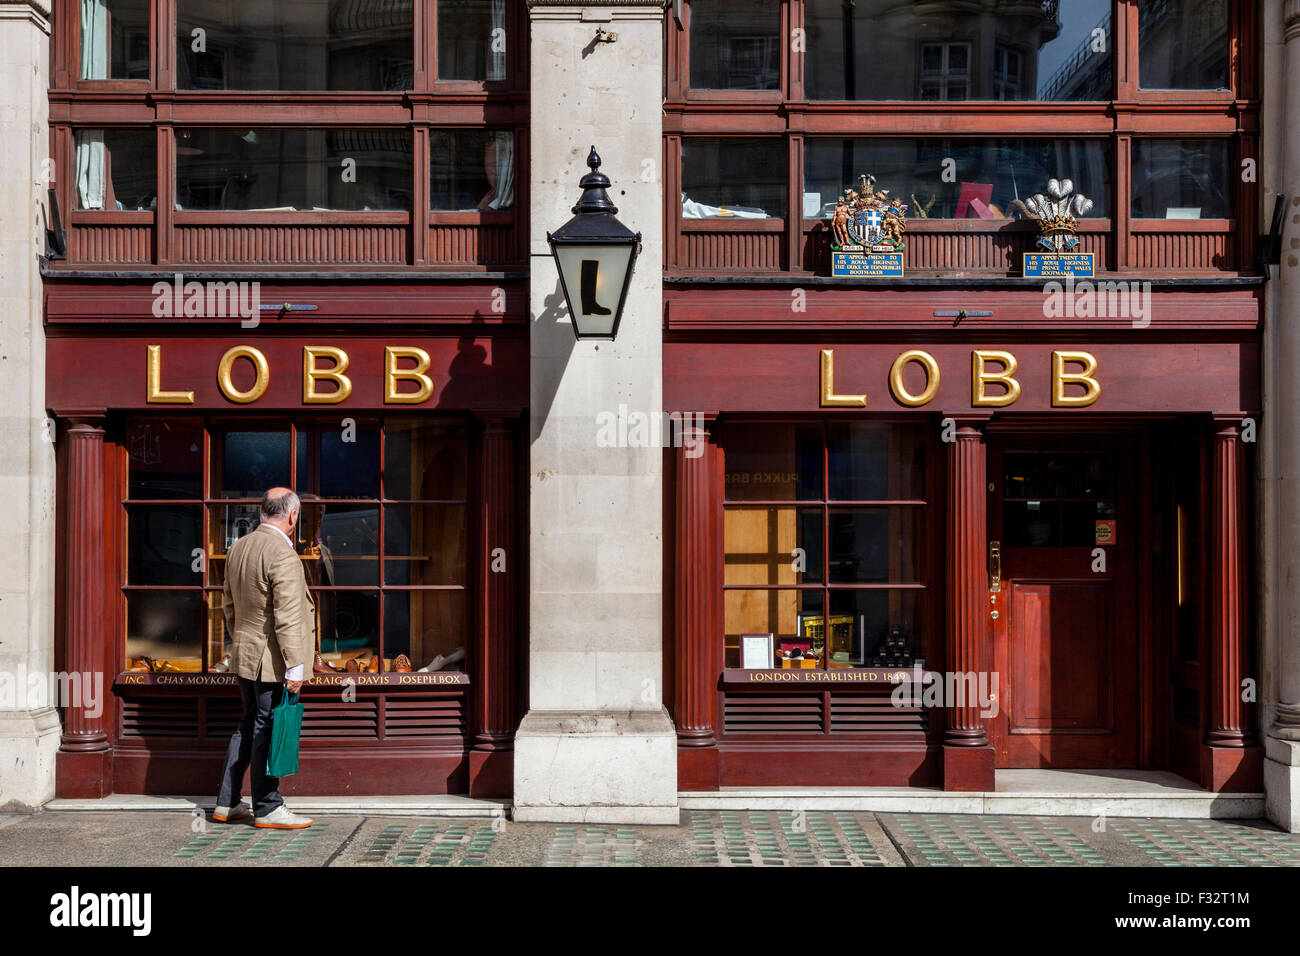 John Lobb Bootmakers & Footwear Shop, St James's Street, London, UK - Stock Image